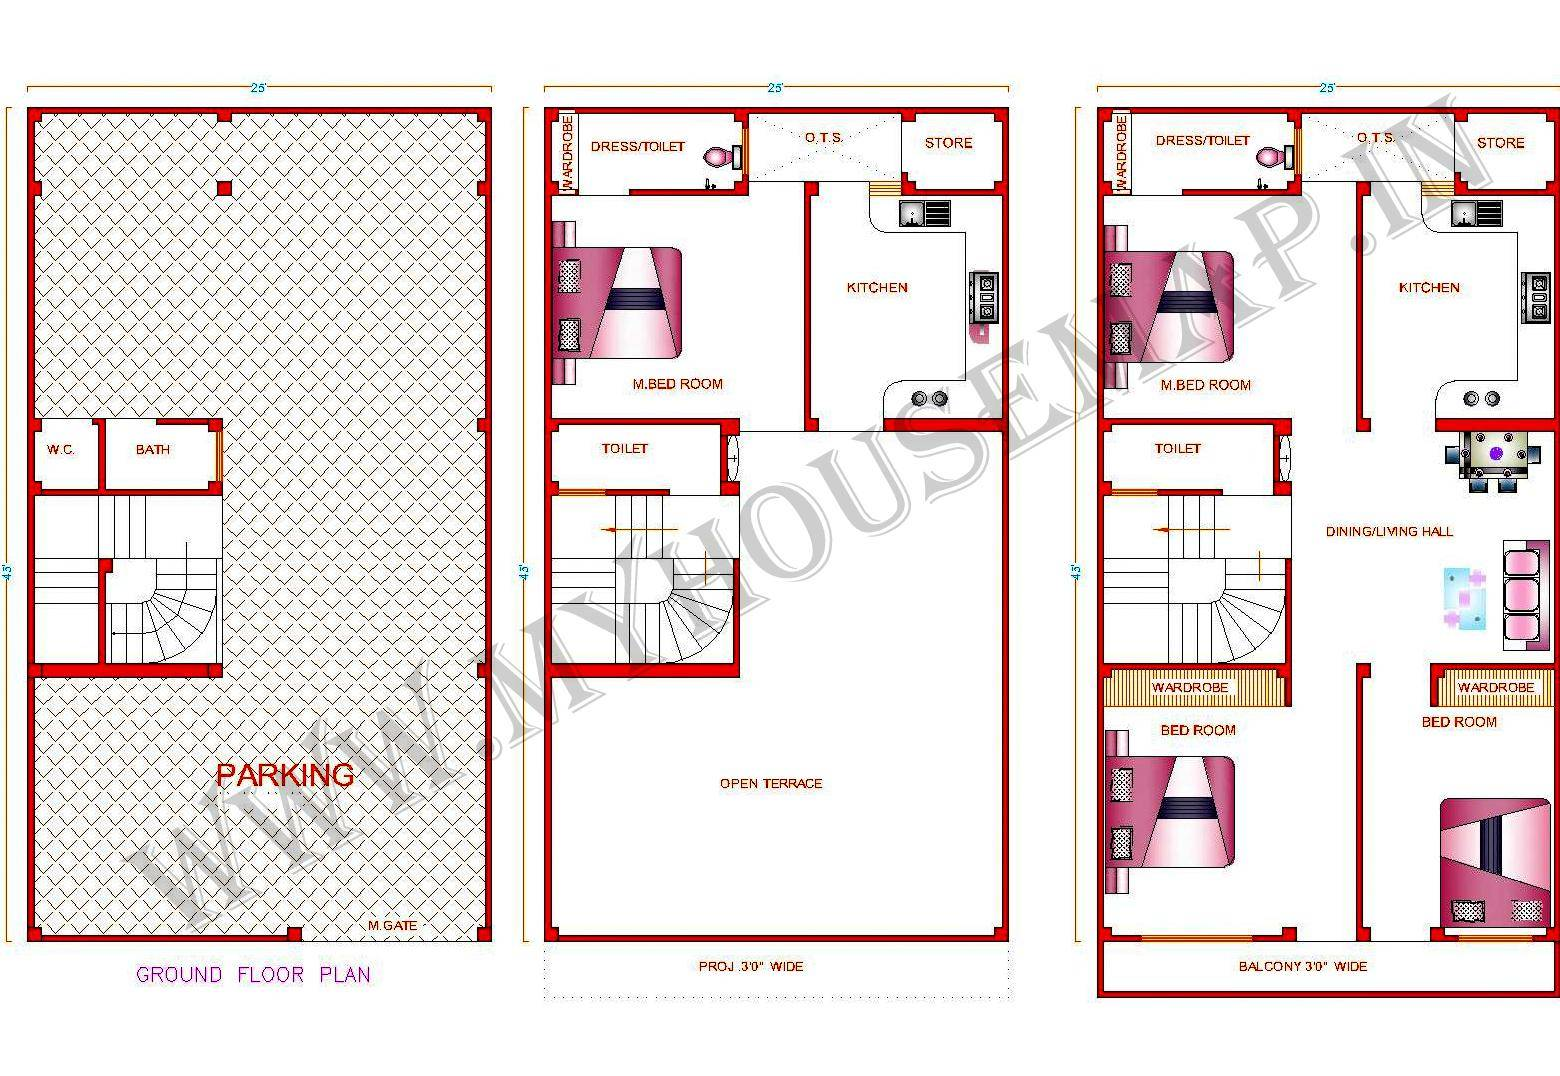 22 best simple map for houses ideas house plans 20805 - Home Map Design